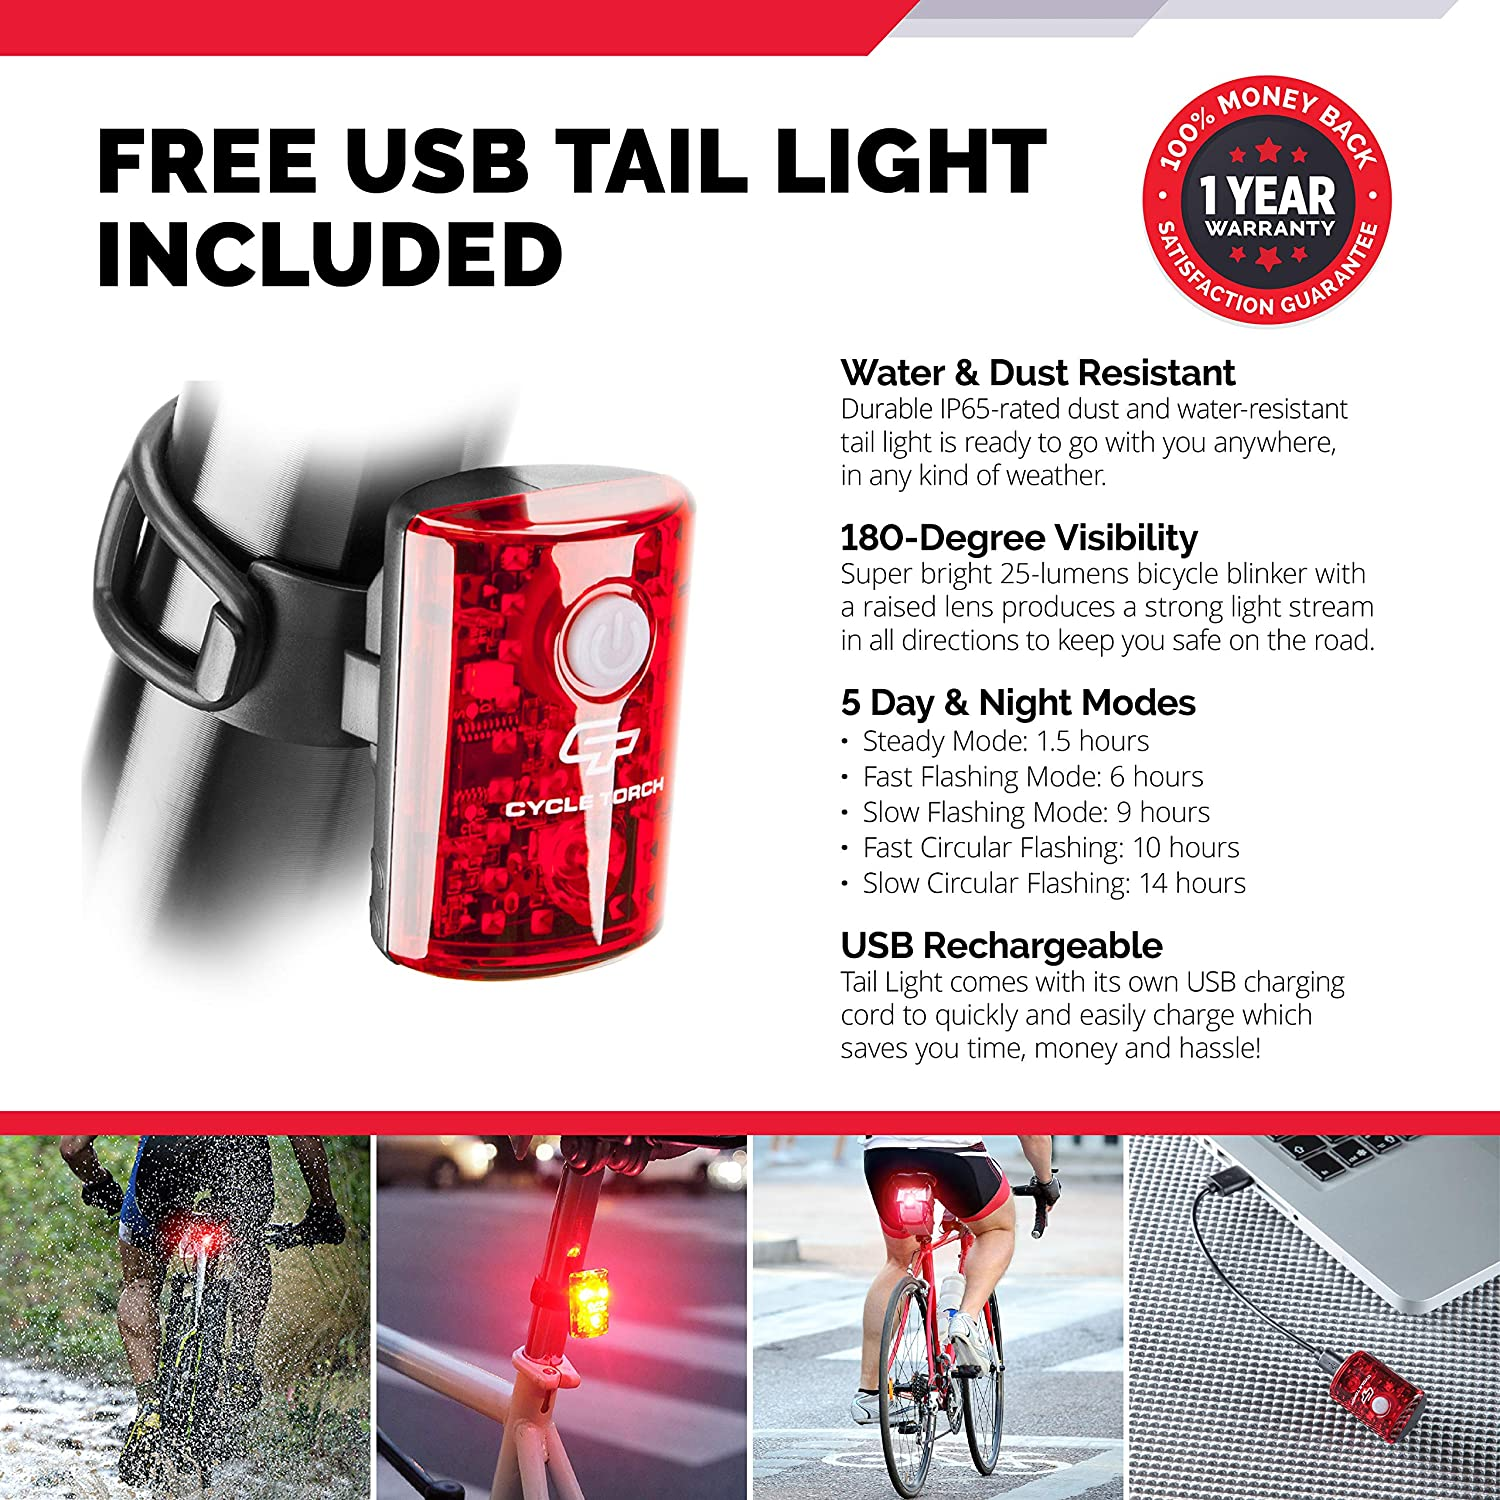 Black Shrk300 Fits ALL Bikes Quick Release Flashlight Set Cycle Torch SUPER BRIGHT USB Rechargeable Bike Light Shark 300 Bicycle HeadLight- USB TAIL LIGHT Included- 300 Lumens LED Front Light